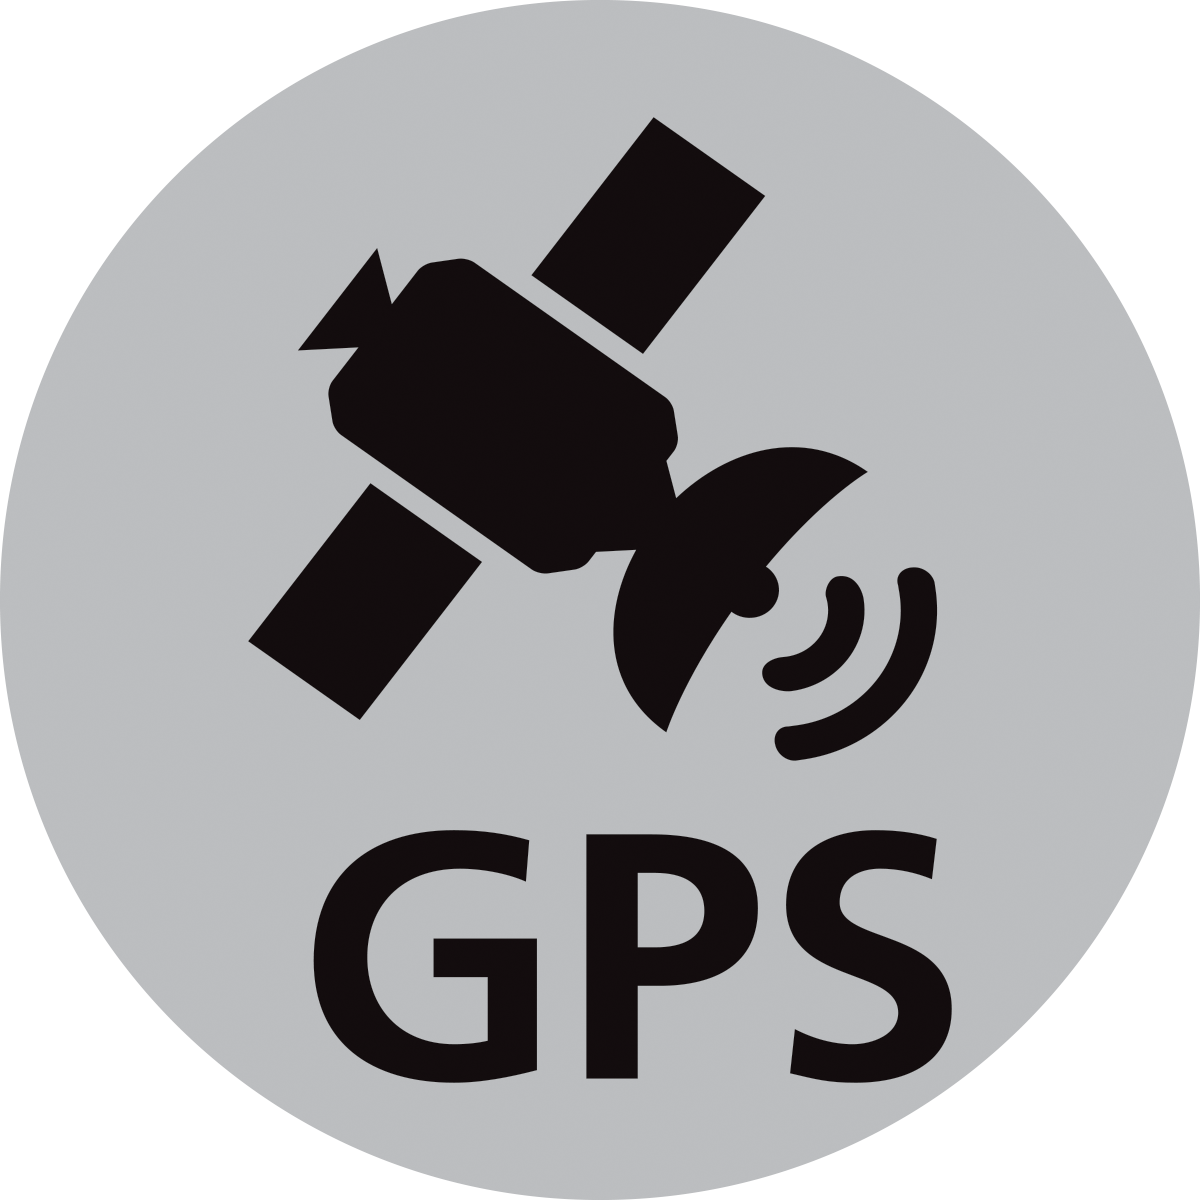 Png images all file. Gps clipart transparent